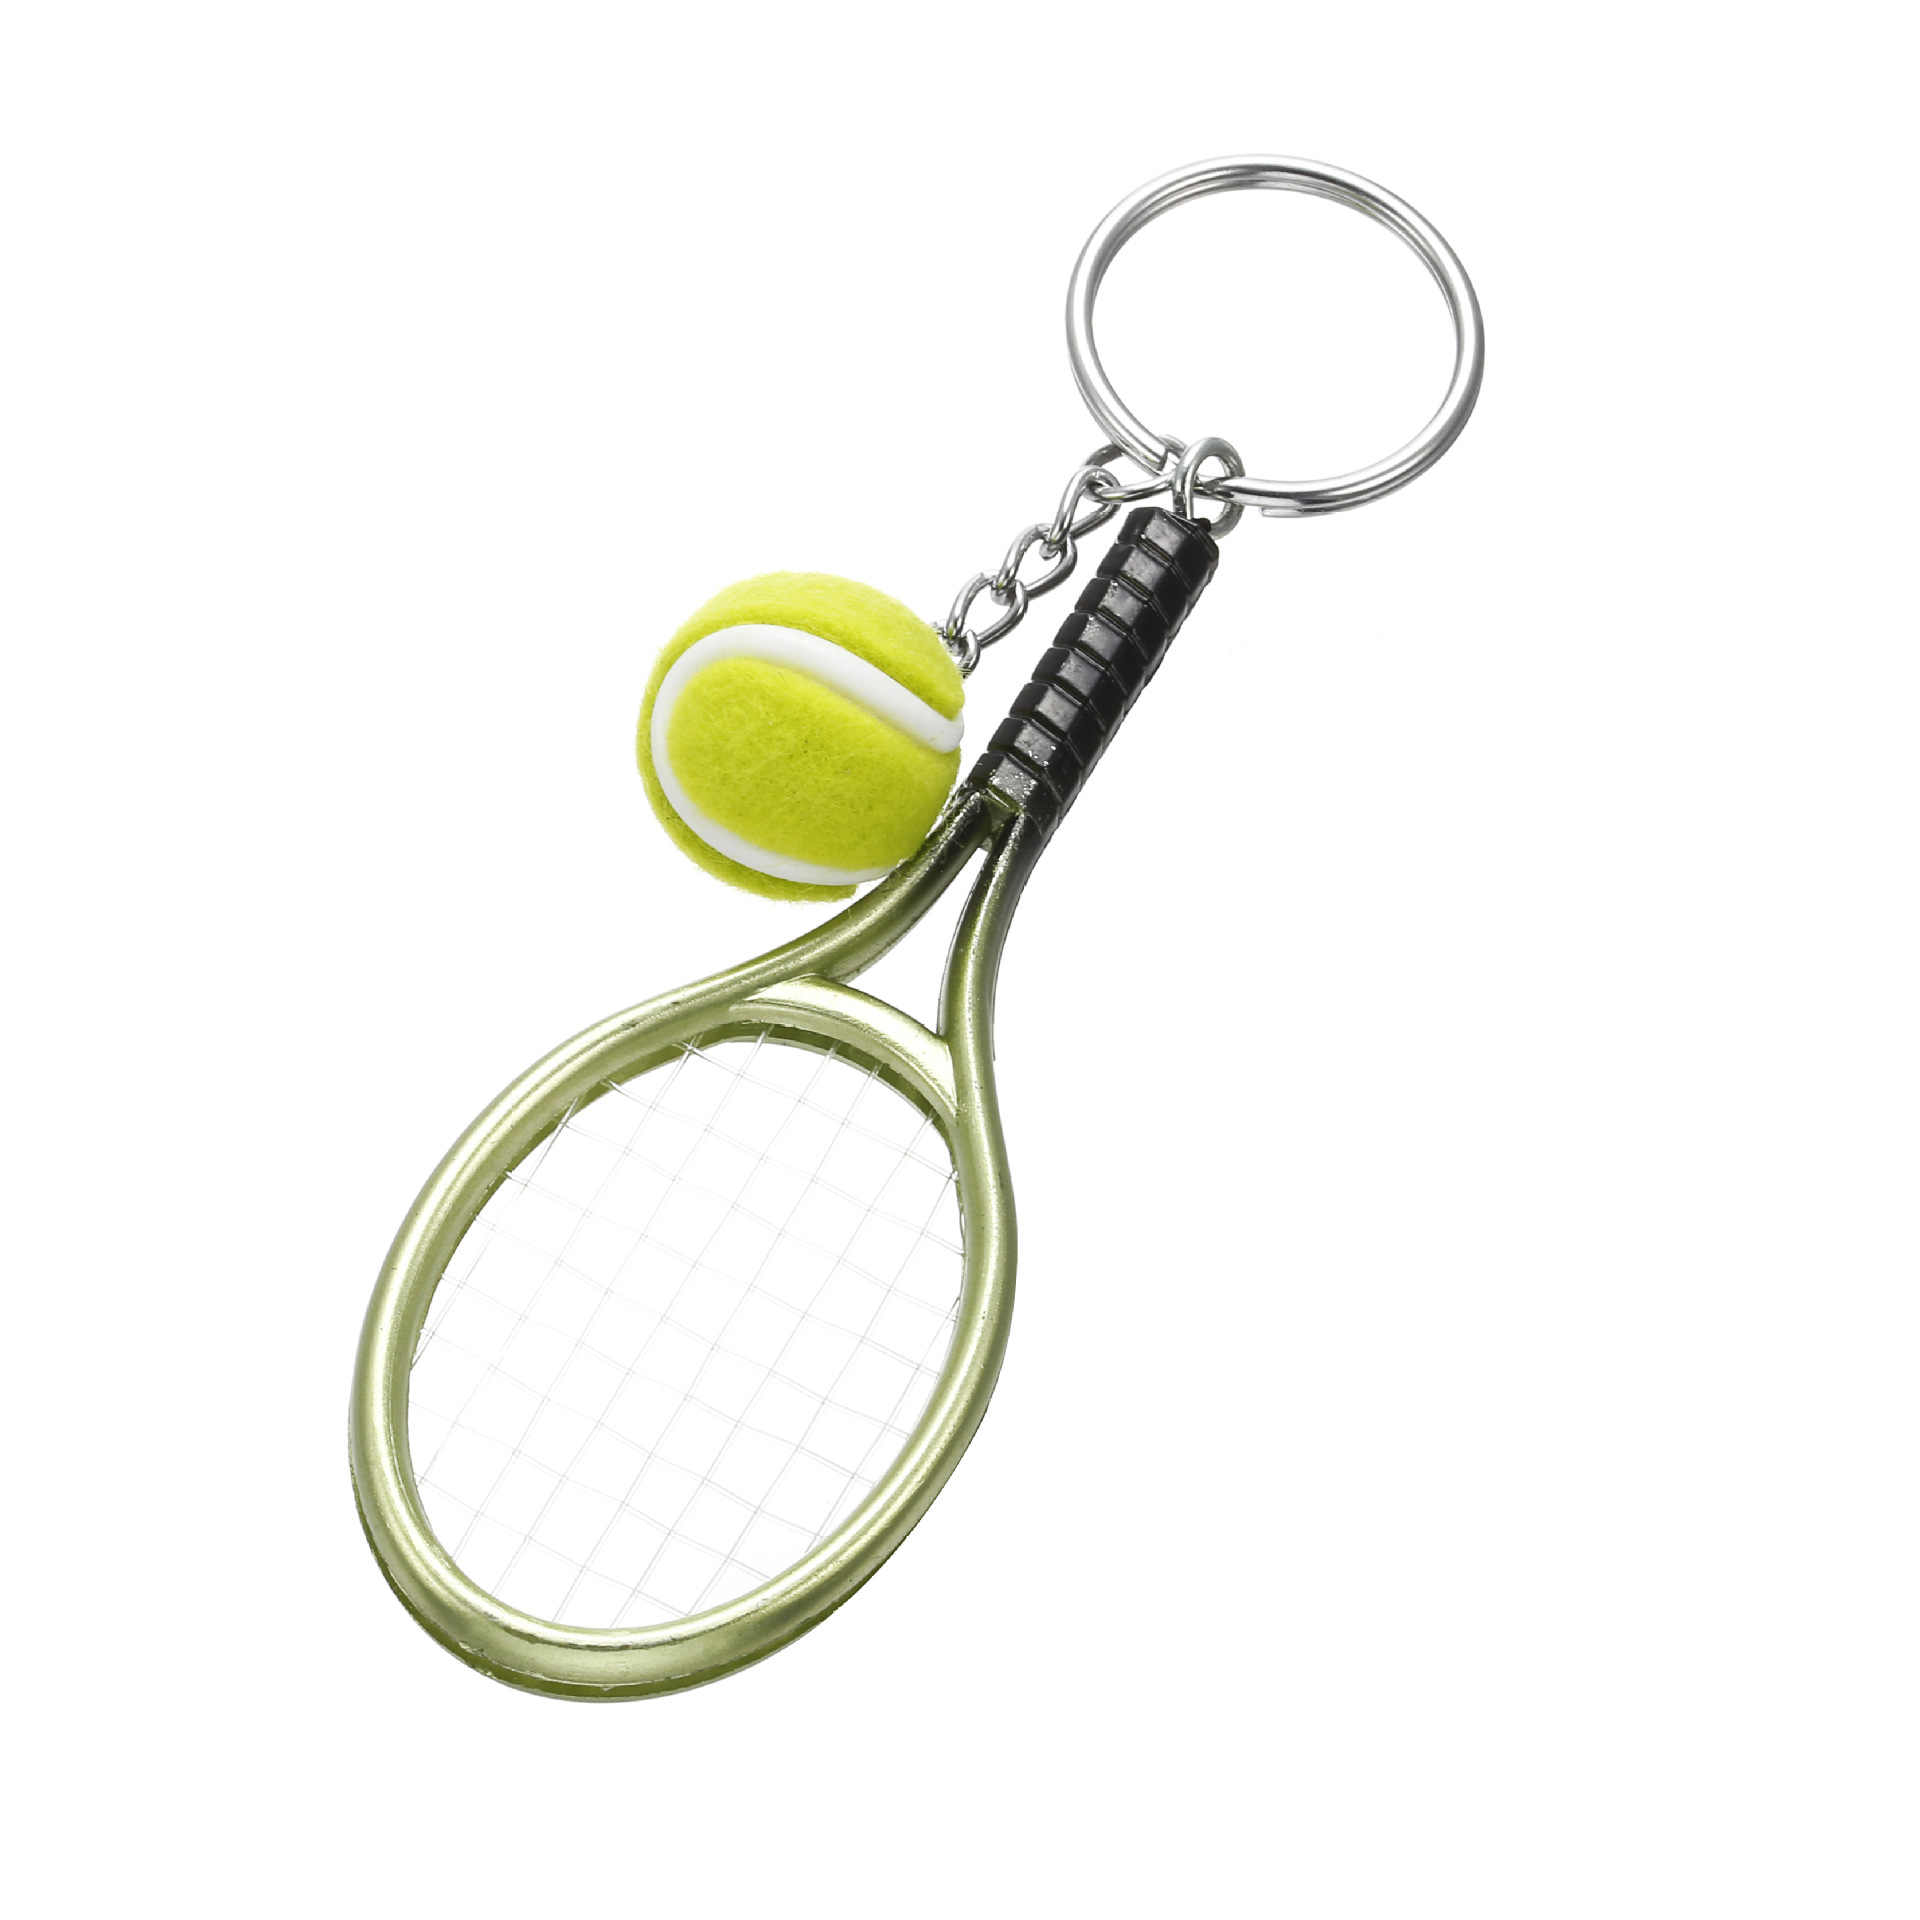 Mini Tennis Keychain Bag Charm Pendant Ball Ornaments Women Men Kids Key Ring Sports Fans Souvenir Birthday Gift Wholesale